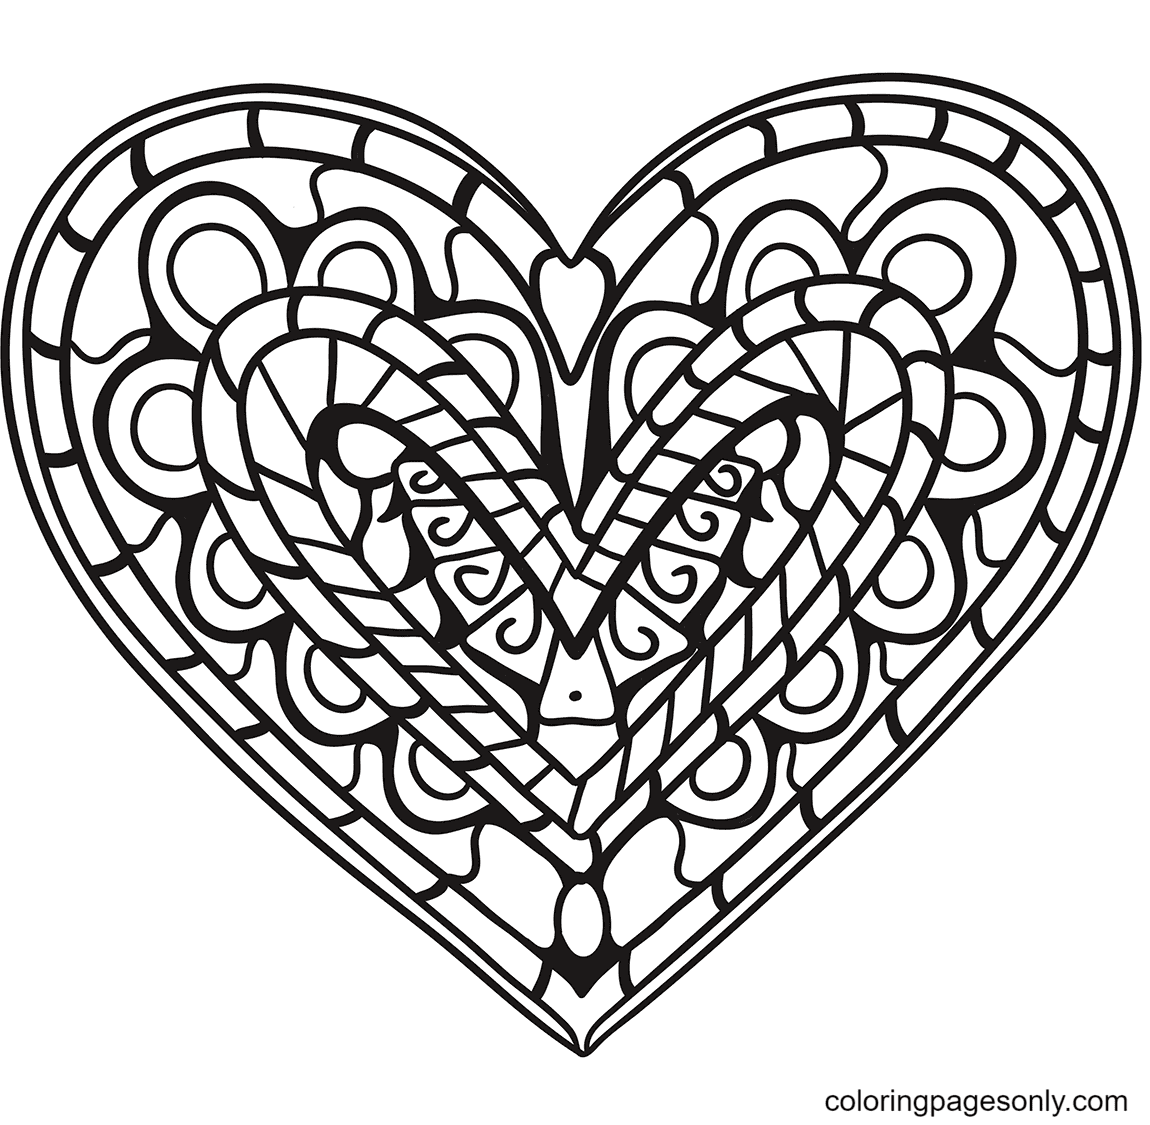 Heart Zentangle Coloring Page